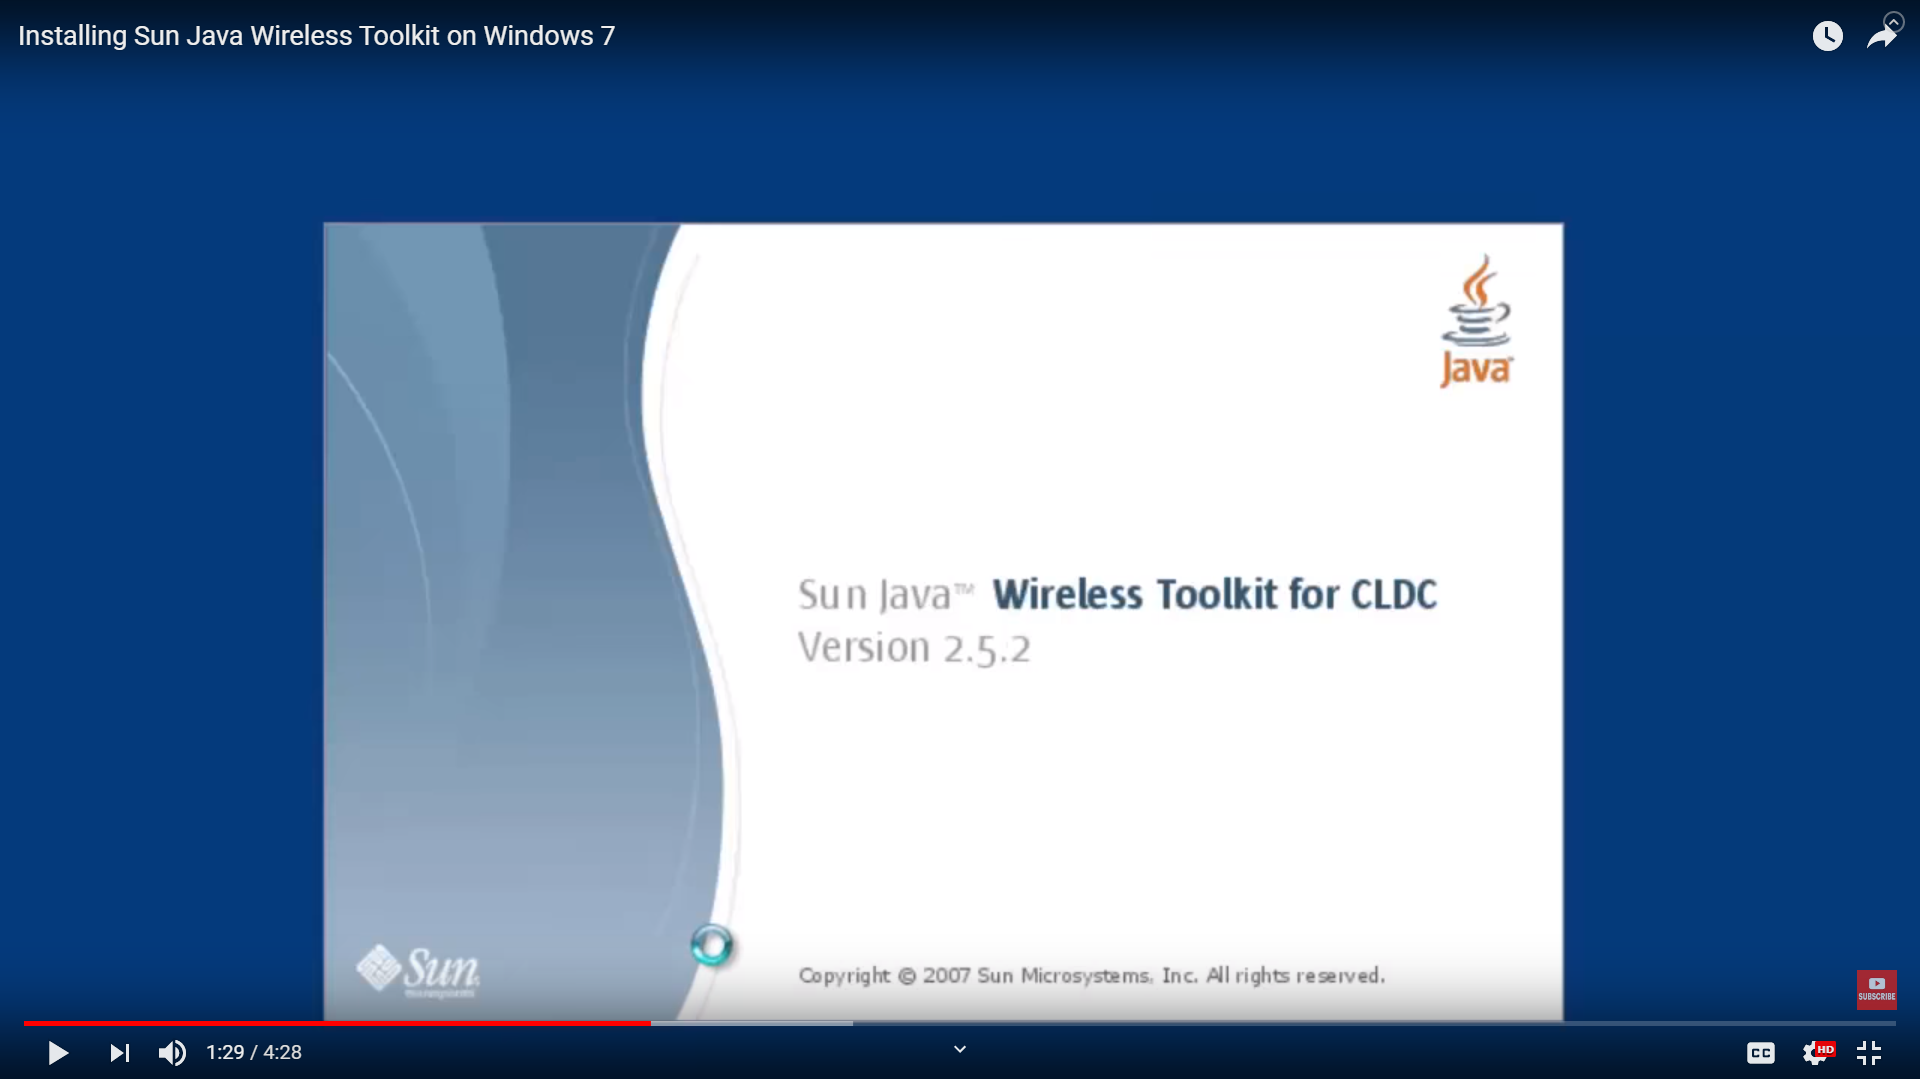 Installing Sun Java Wireless Toolkit in Windows 7